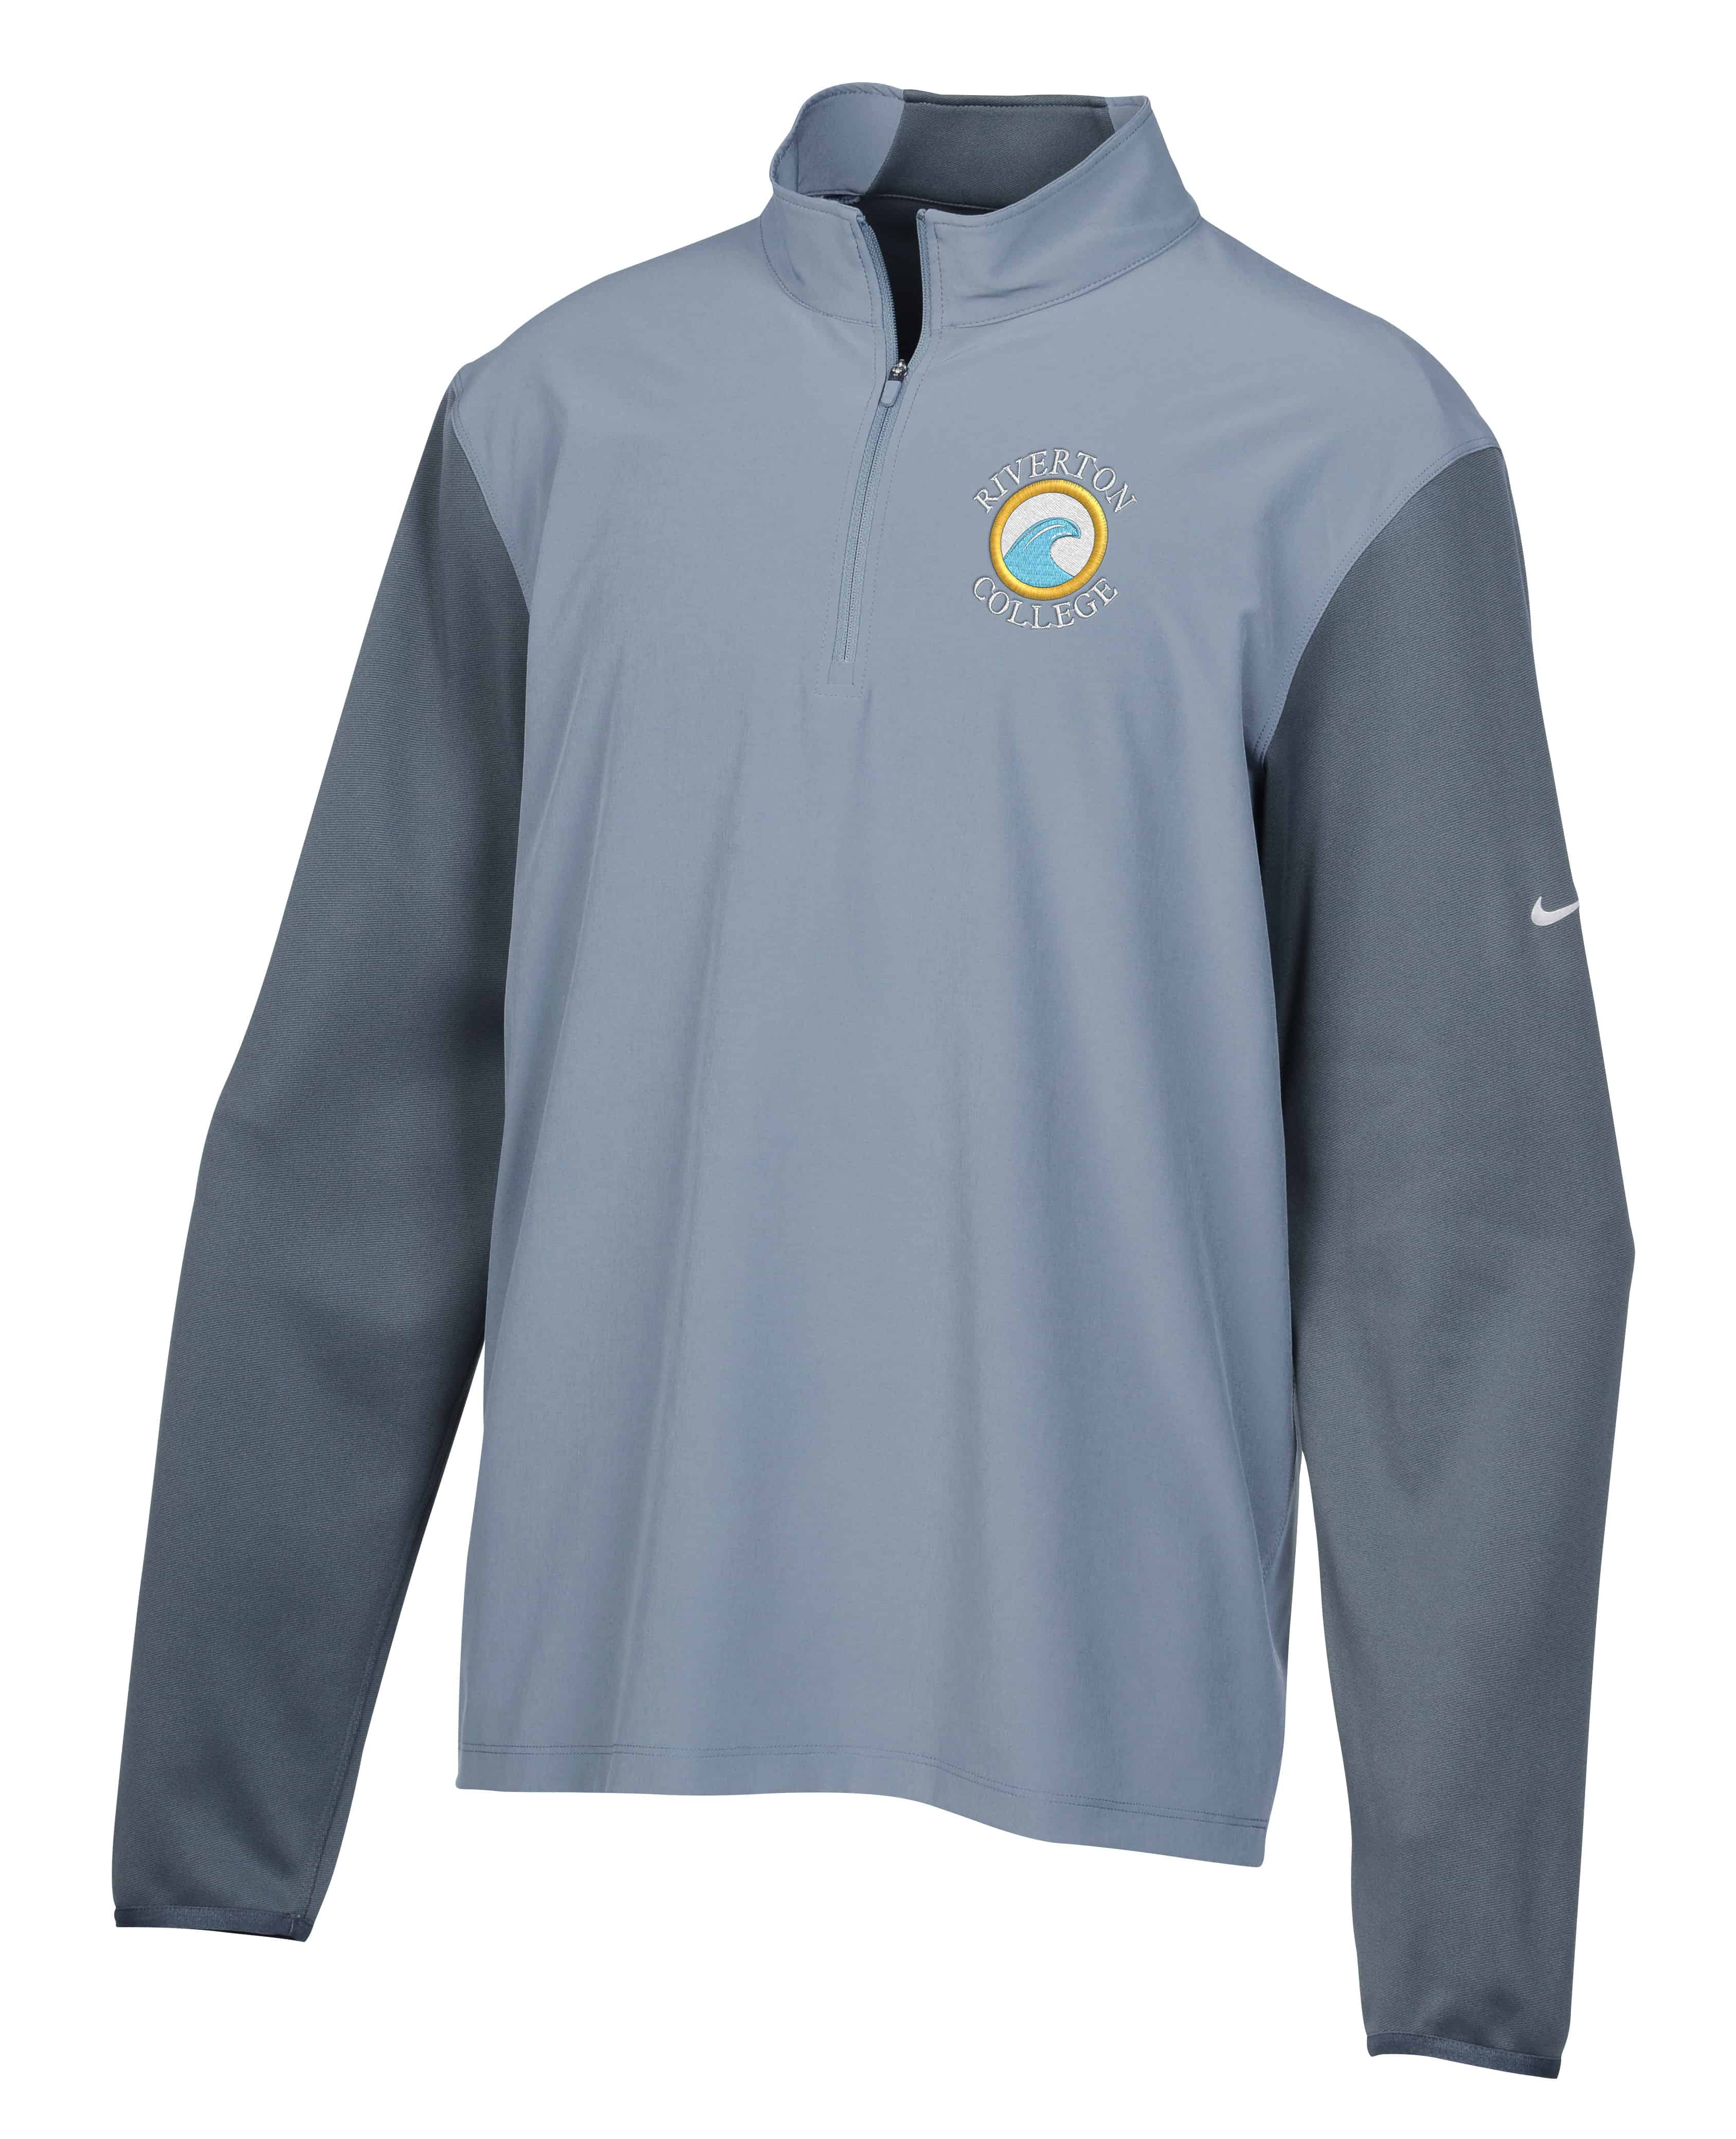 A gray Nike Performance Hybrid 1/2-Zip Pullover.